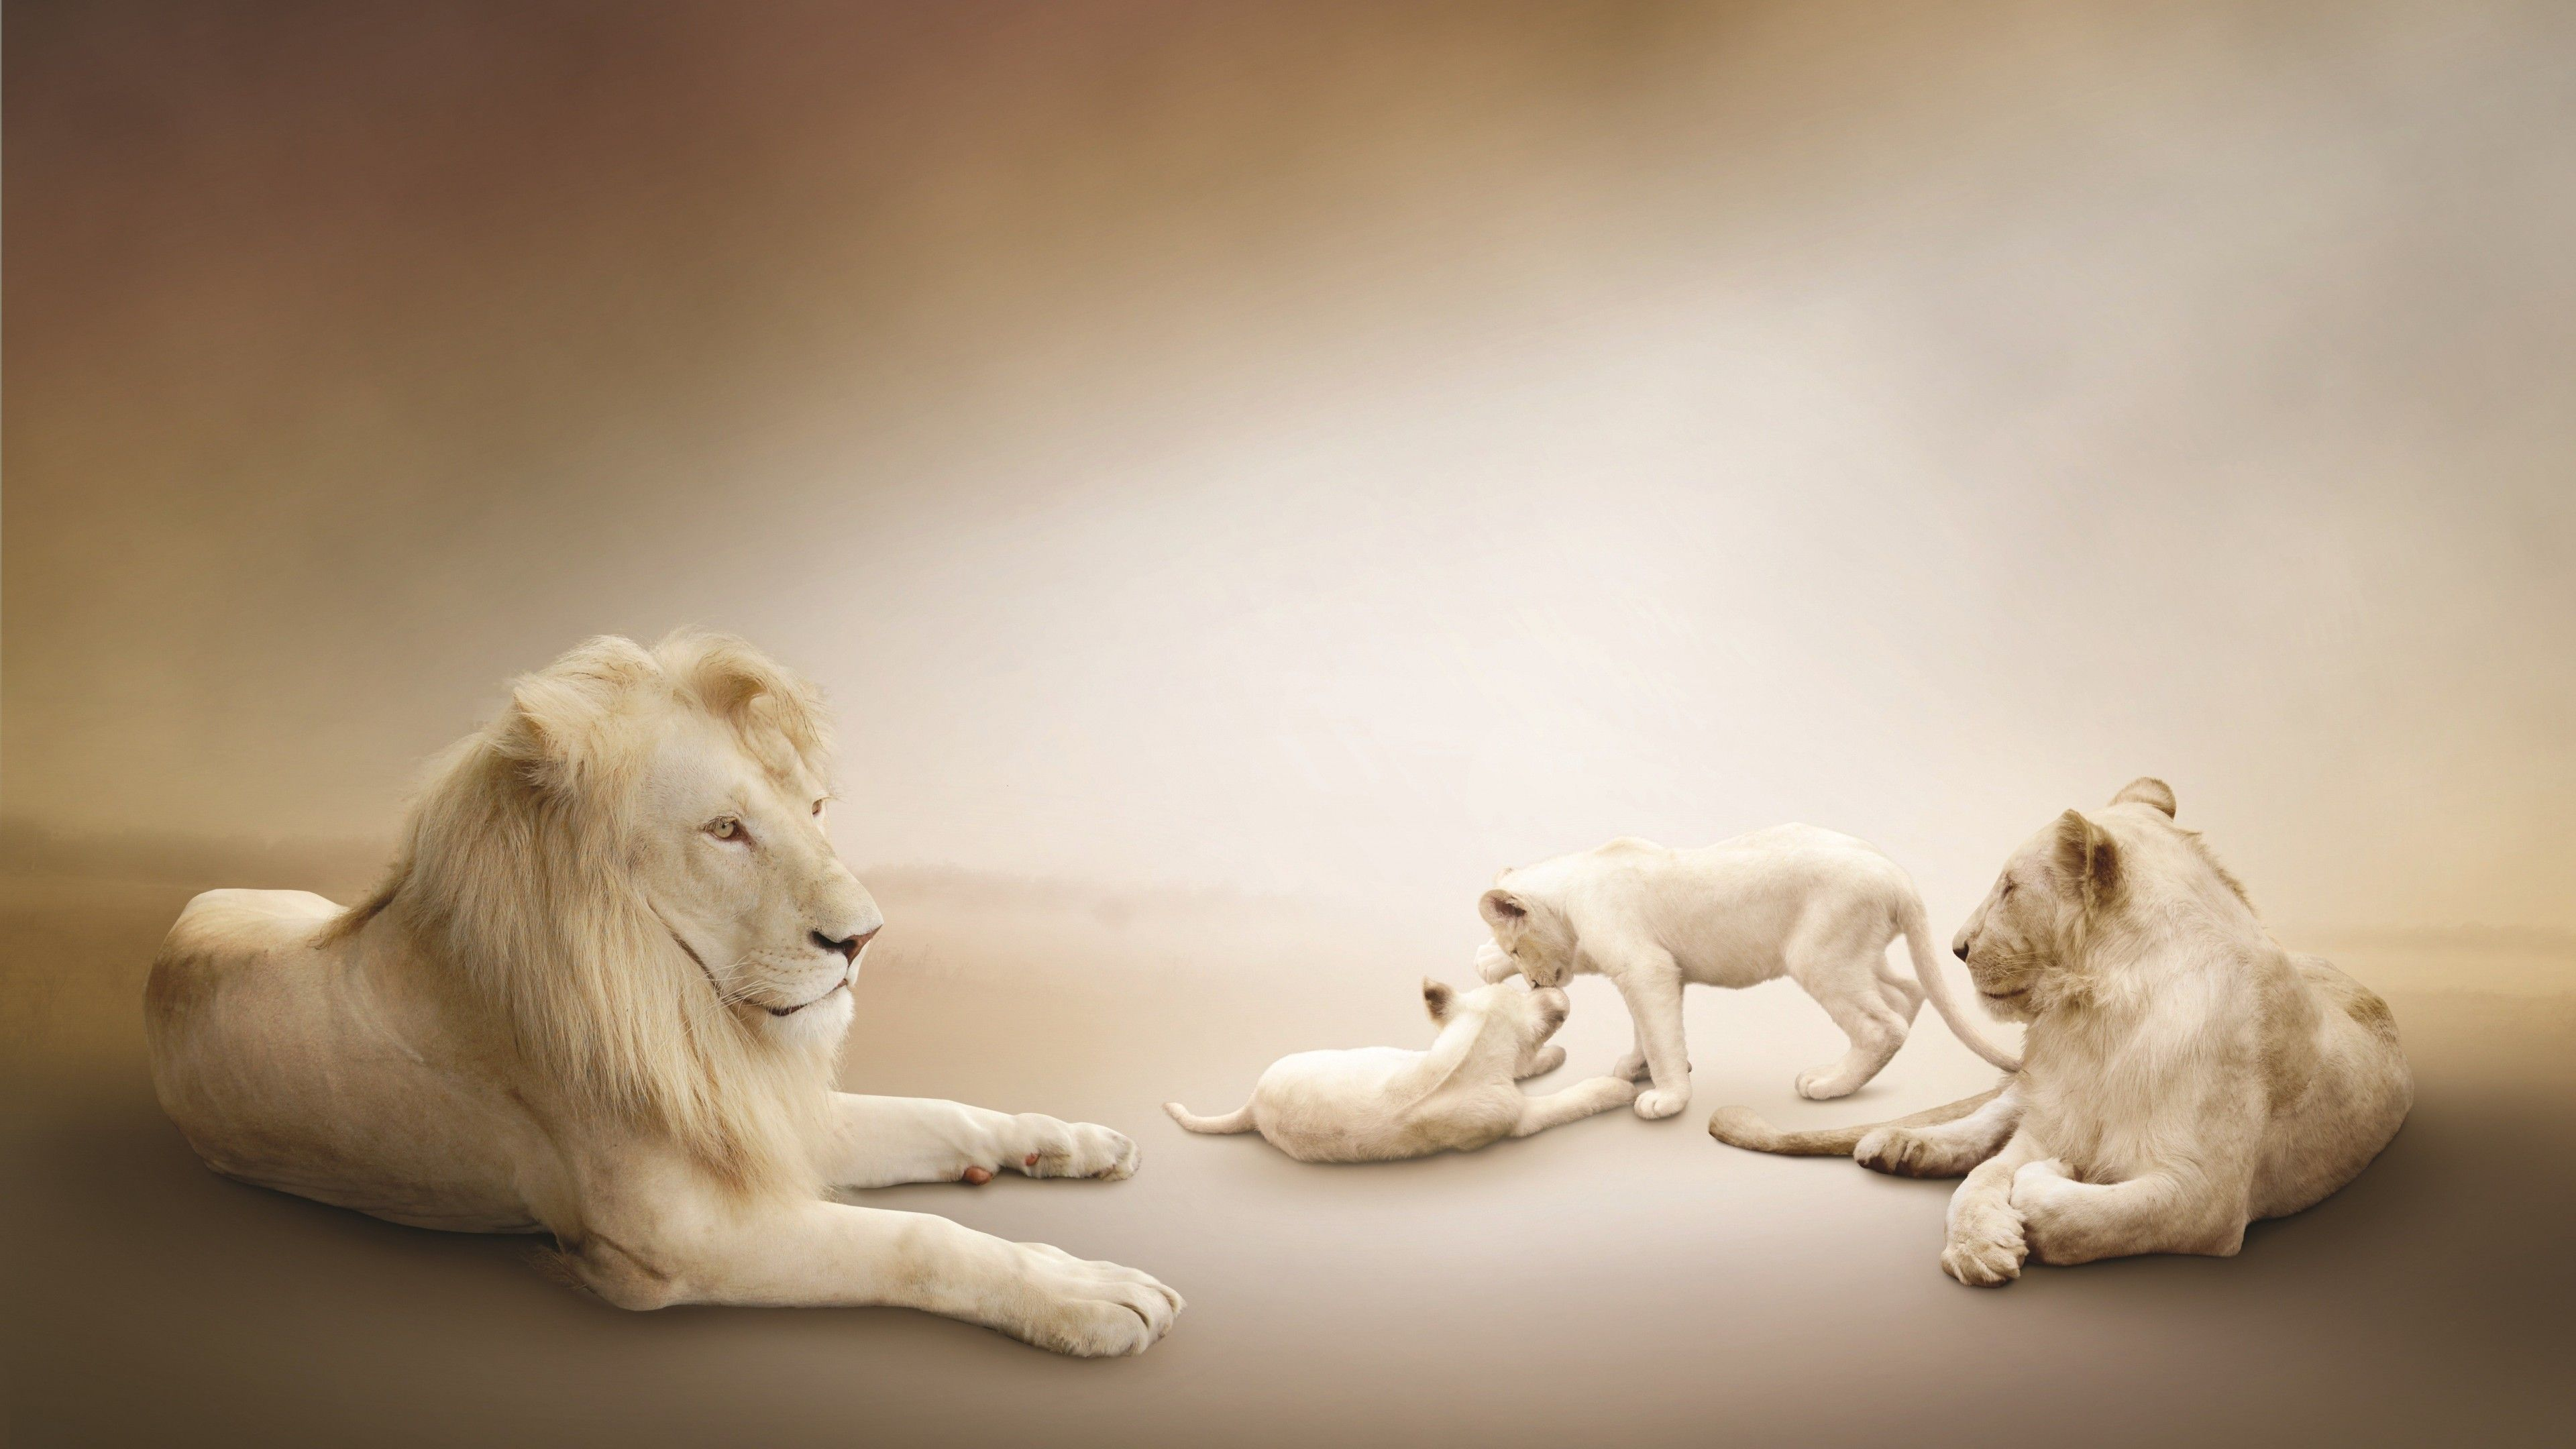 Animals White Lion Wallpapers White Lion White Lion Images Lion Pictures